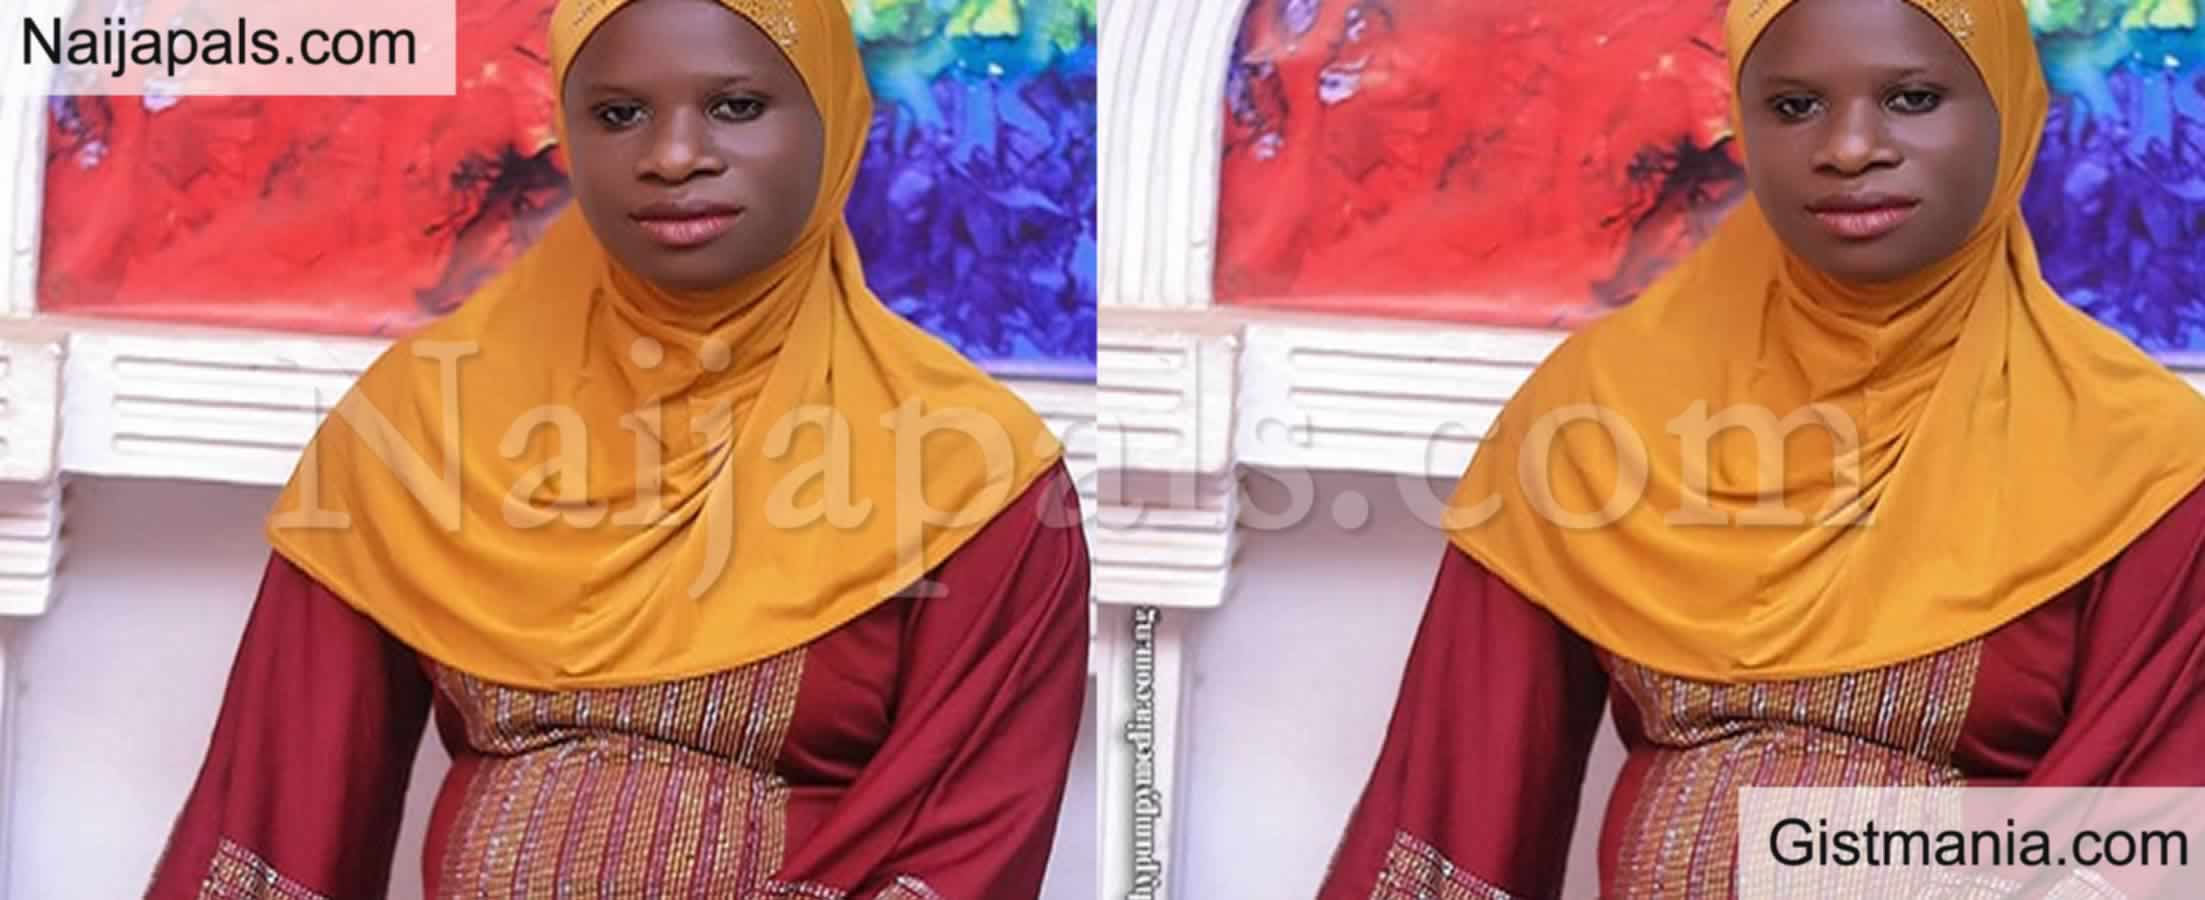 <img alt='.' class='lazyload' data-src='https://img.gistmania.com/emot/news.gif' /> <b>Kidnappers Release Pregnant Woman After Collection N1.5m Ransom In Bauchi </b>(Photo)